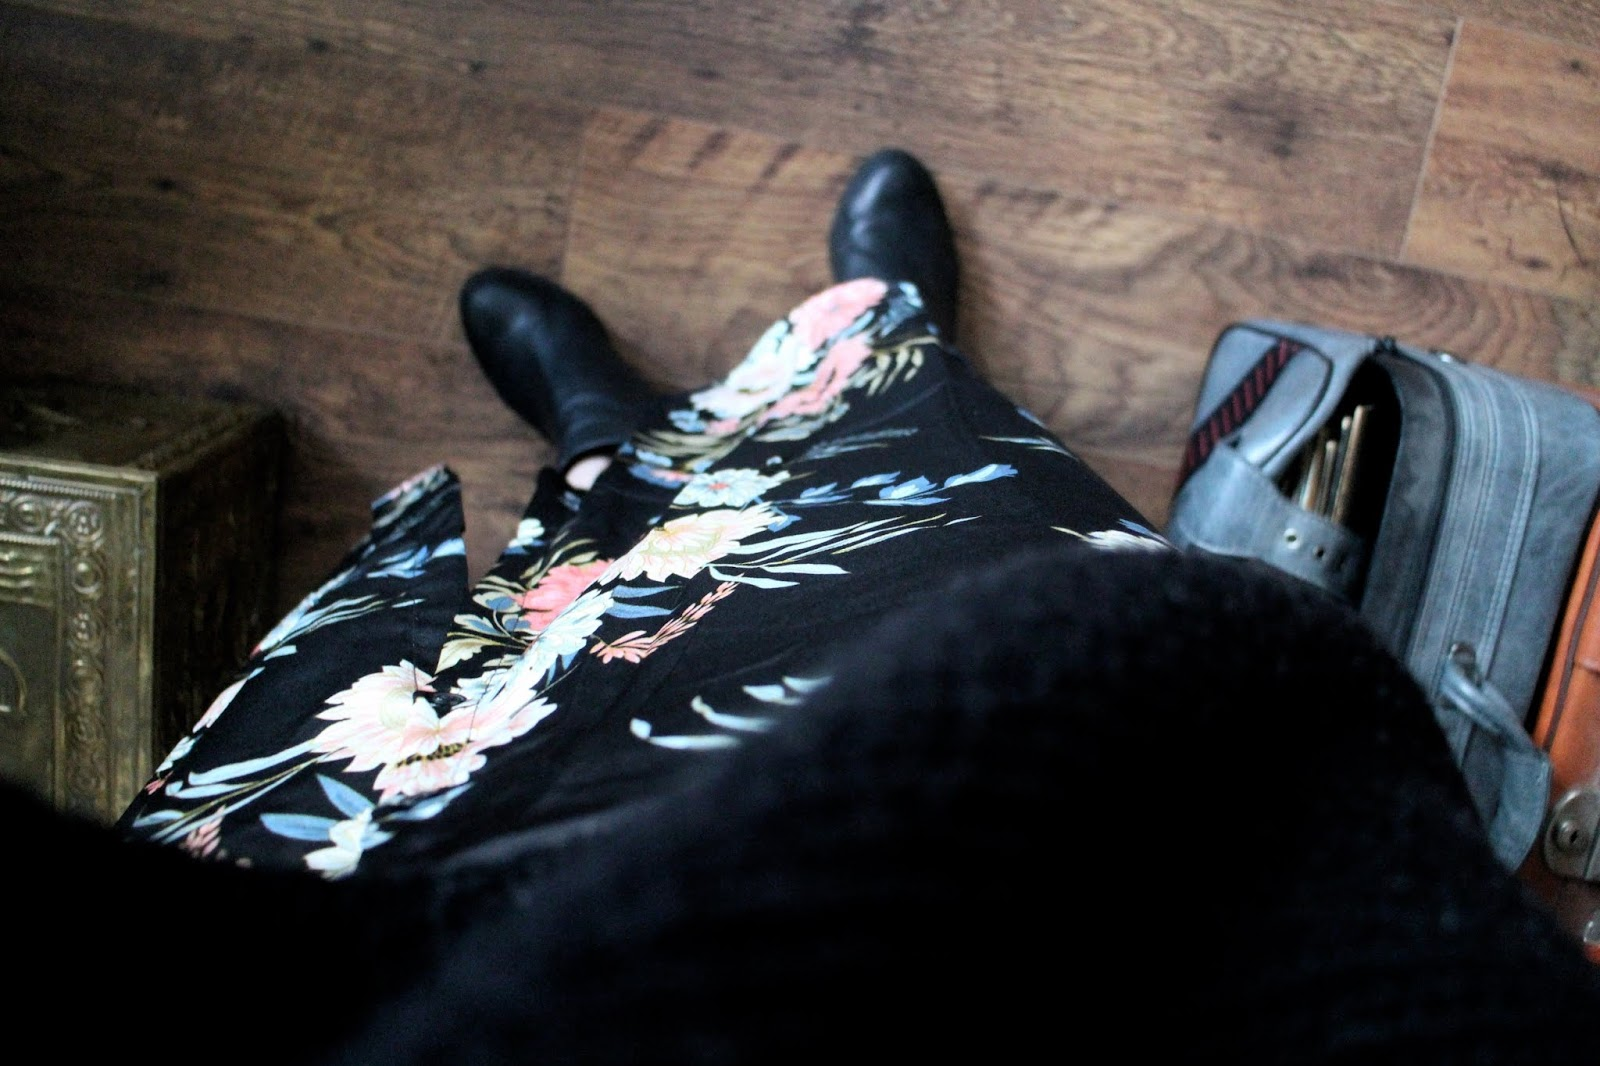 Shot from above, black jumper, maxi dress and shoes on wooden floor